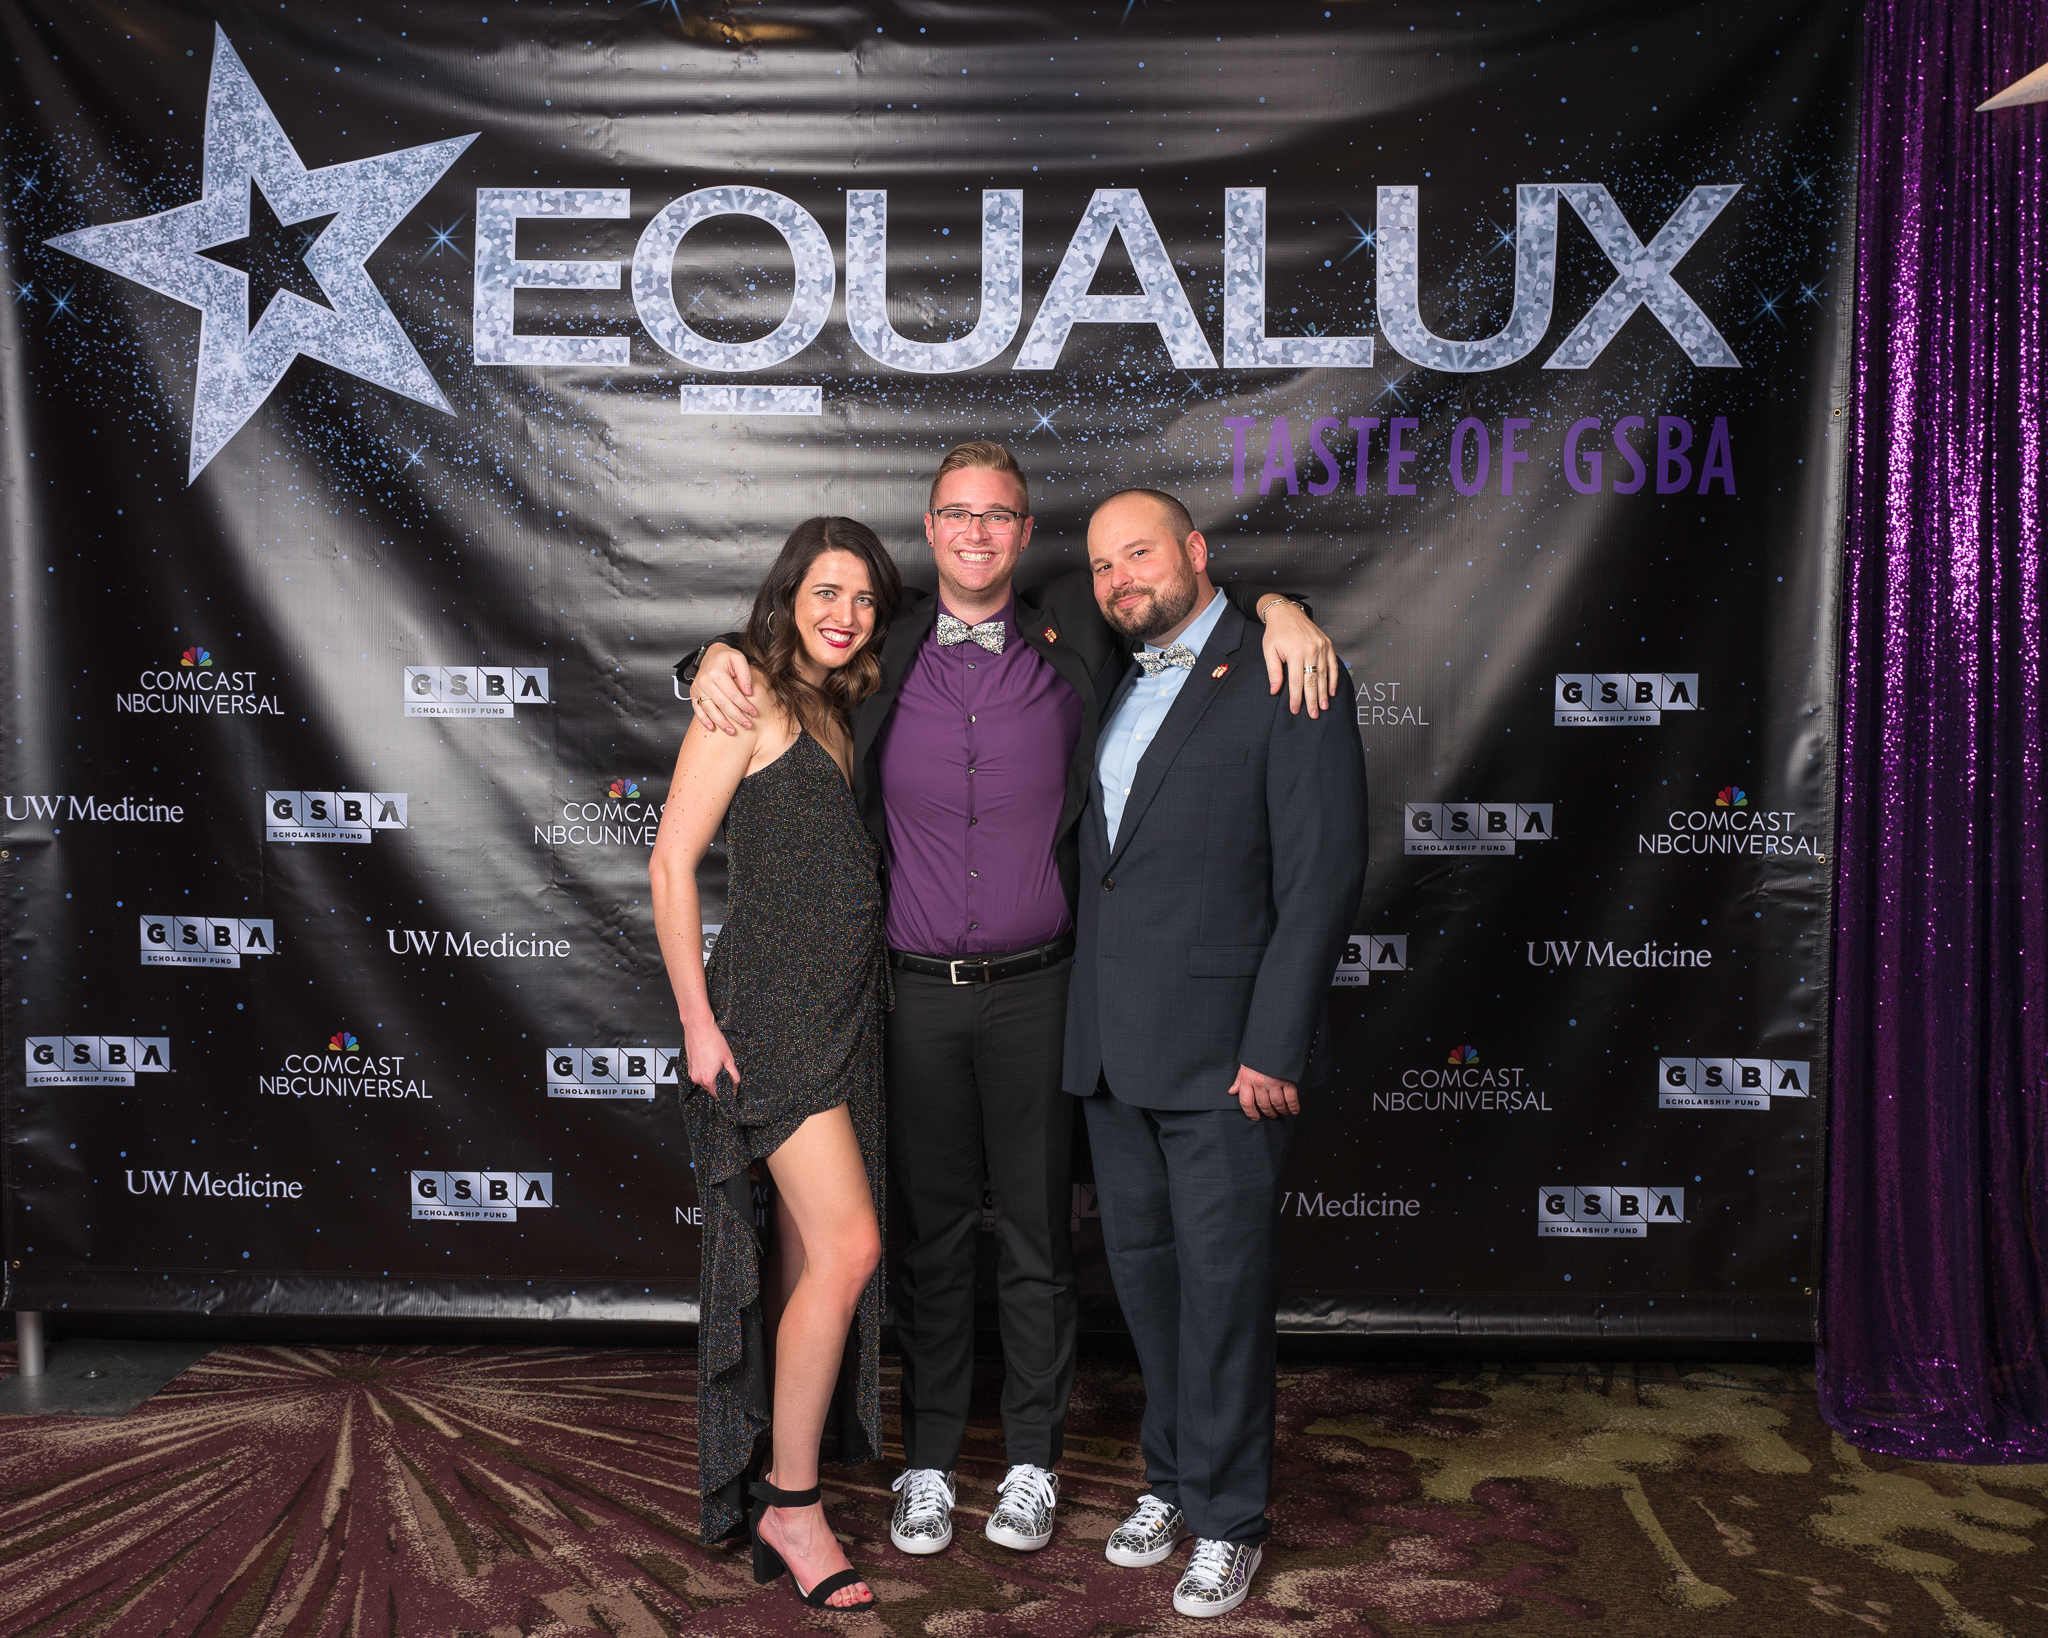 111718_GSBA EQUALUX at The Westin Seattle (Credit- Nate Gowdy)-183.jpg